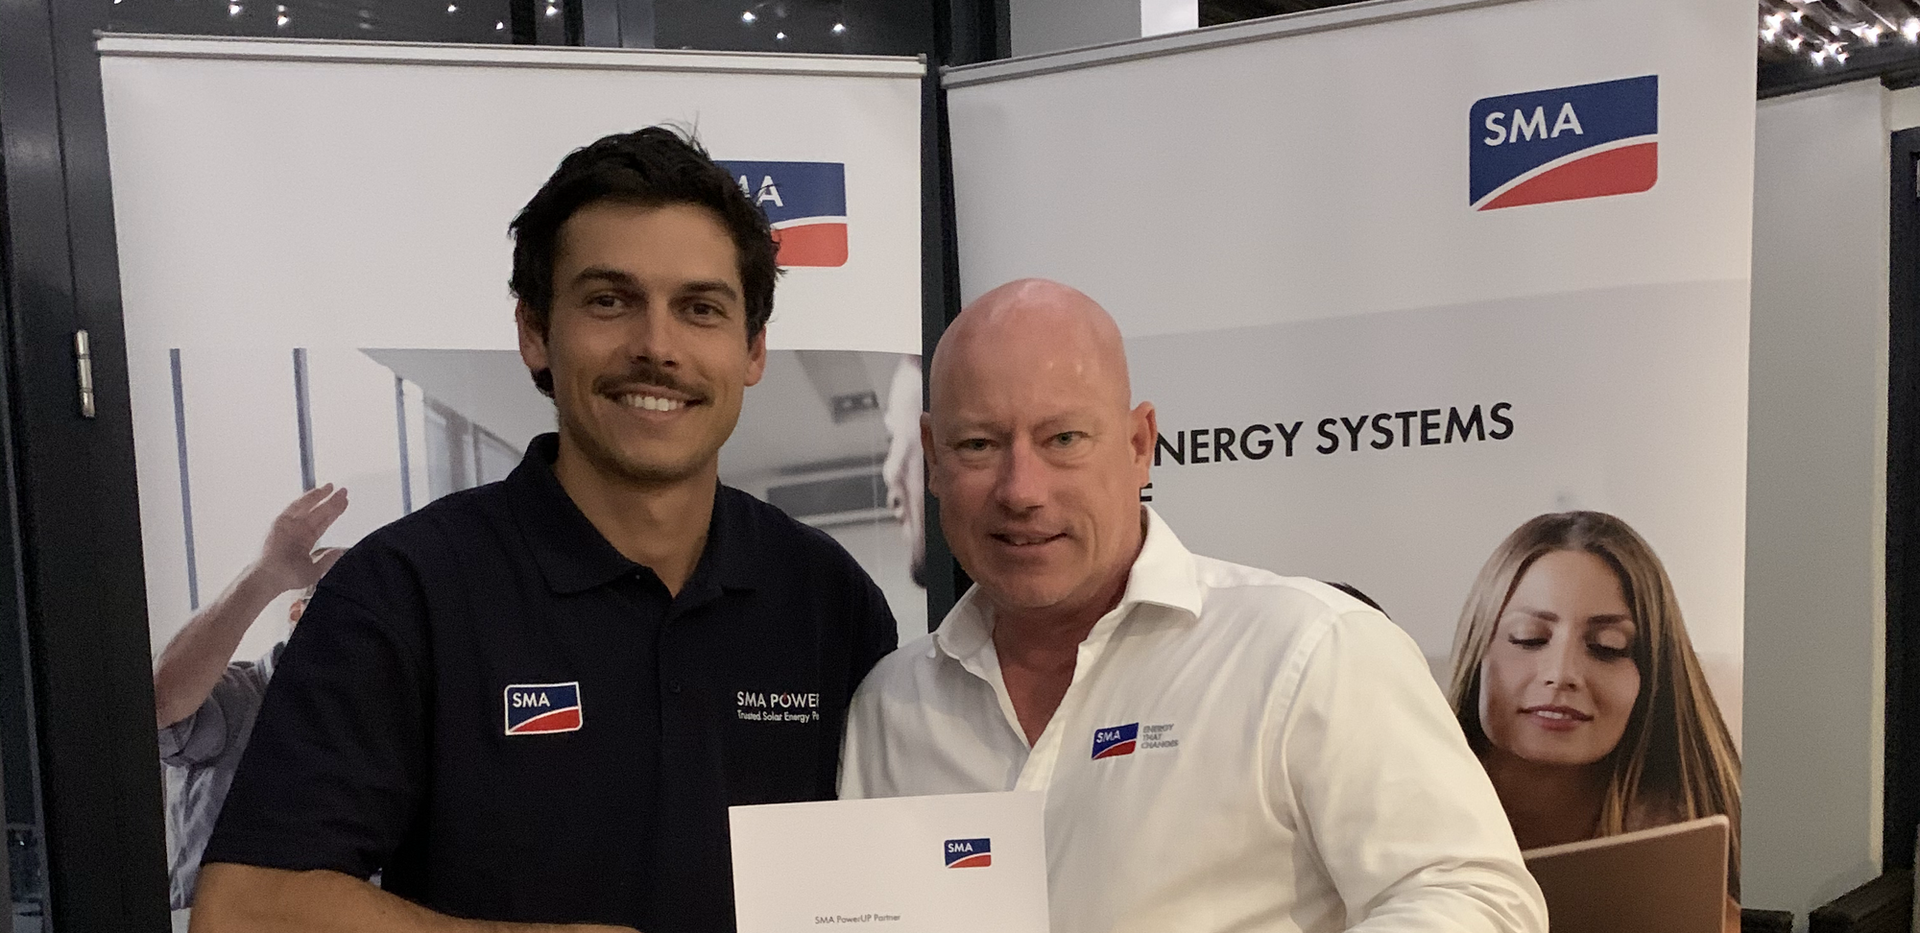 NORTHERN RIVERS SOLAR & ELECTRICAL-is proud to be a PowerUP partner of SMA Australia PTY LTD